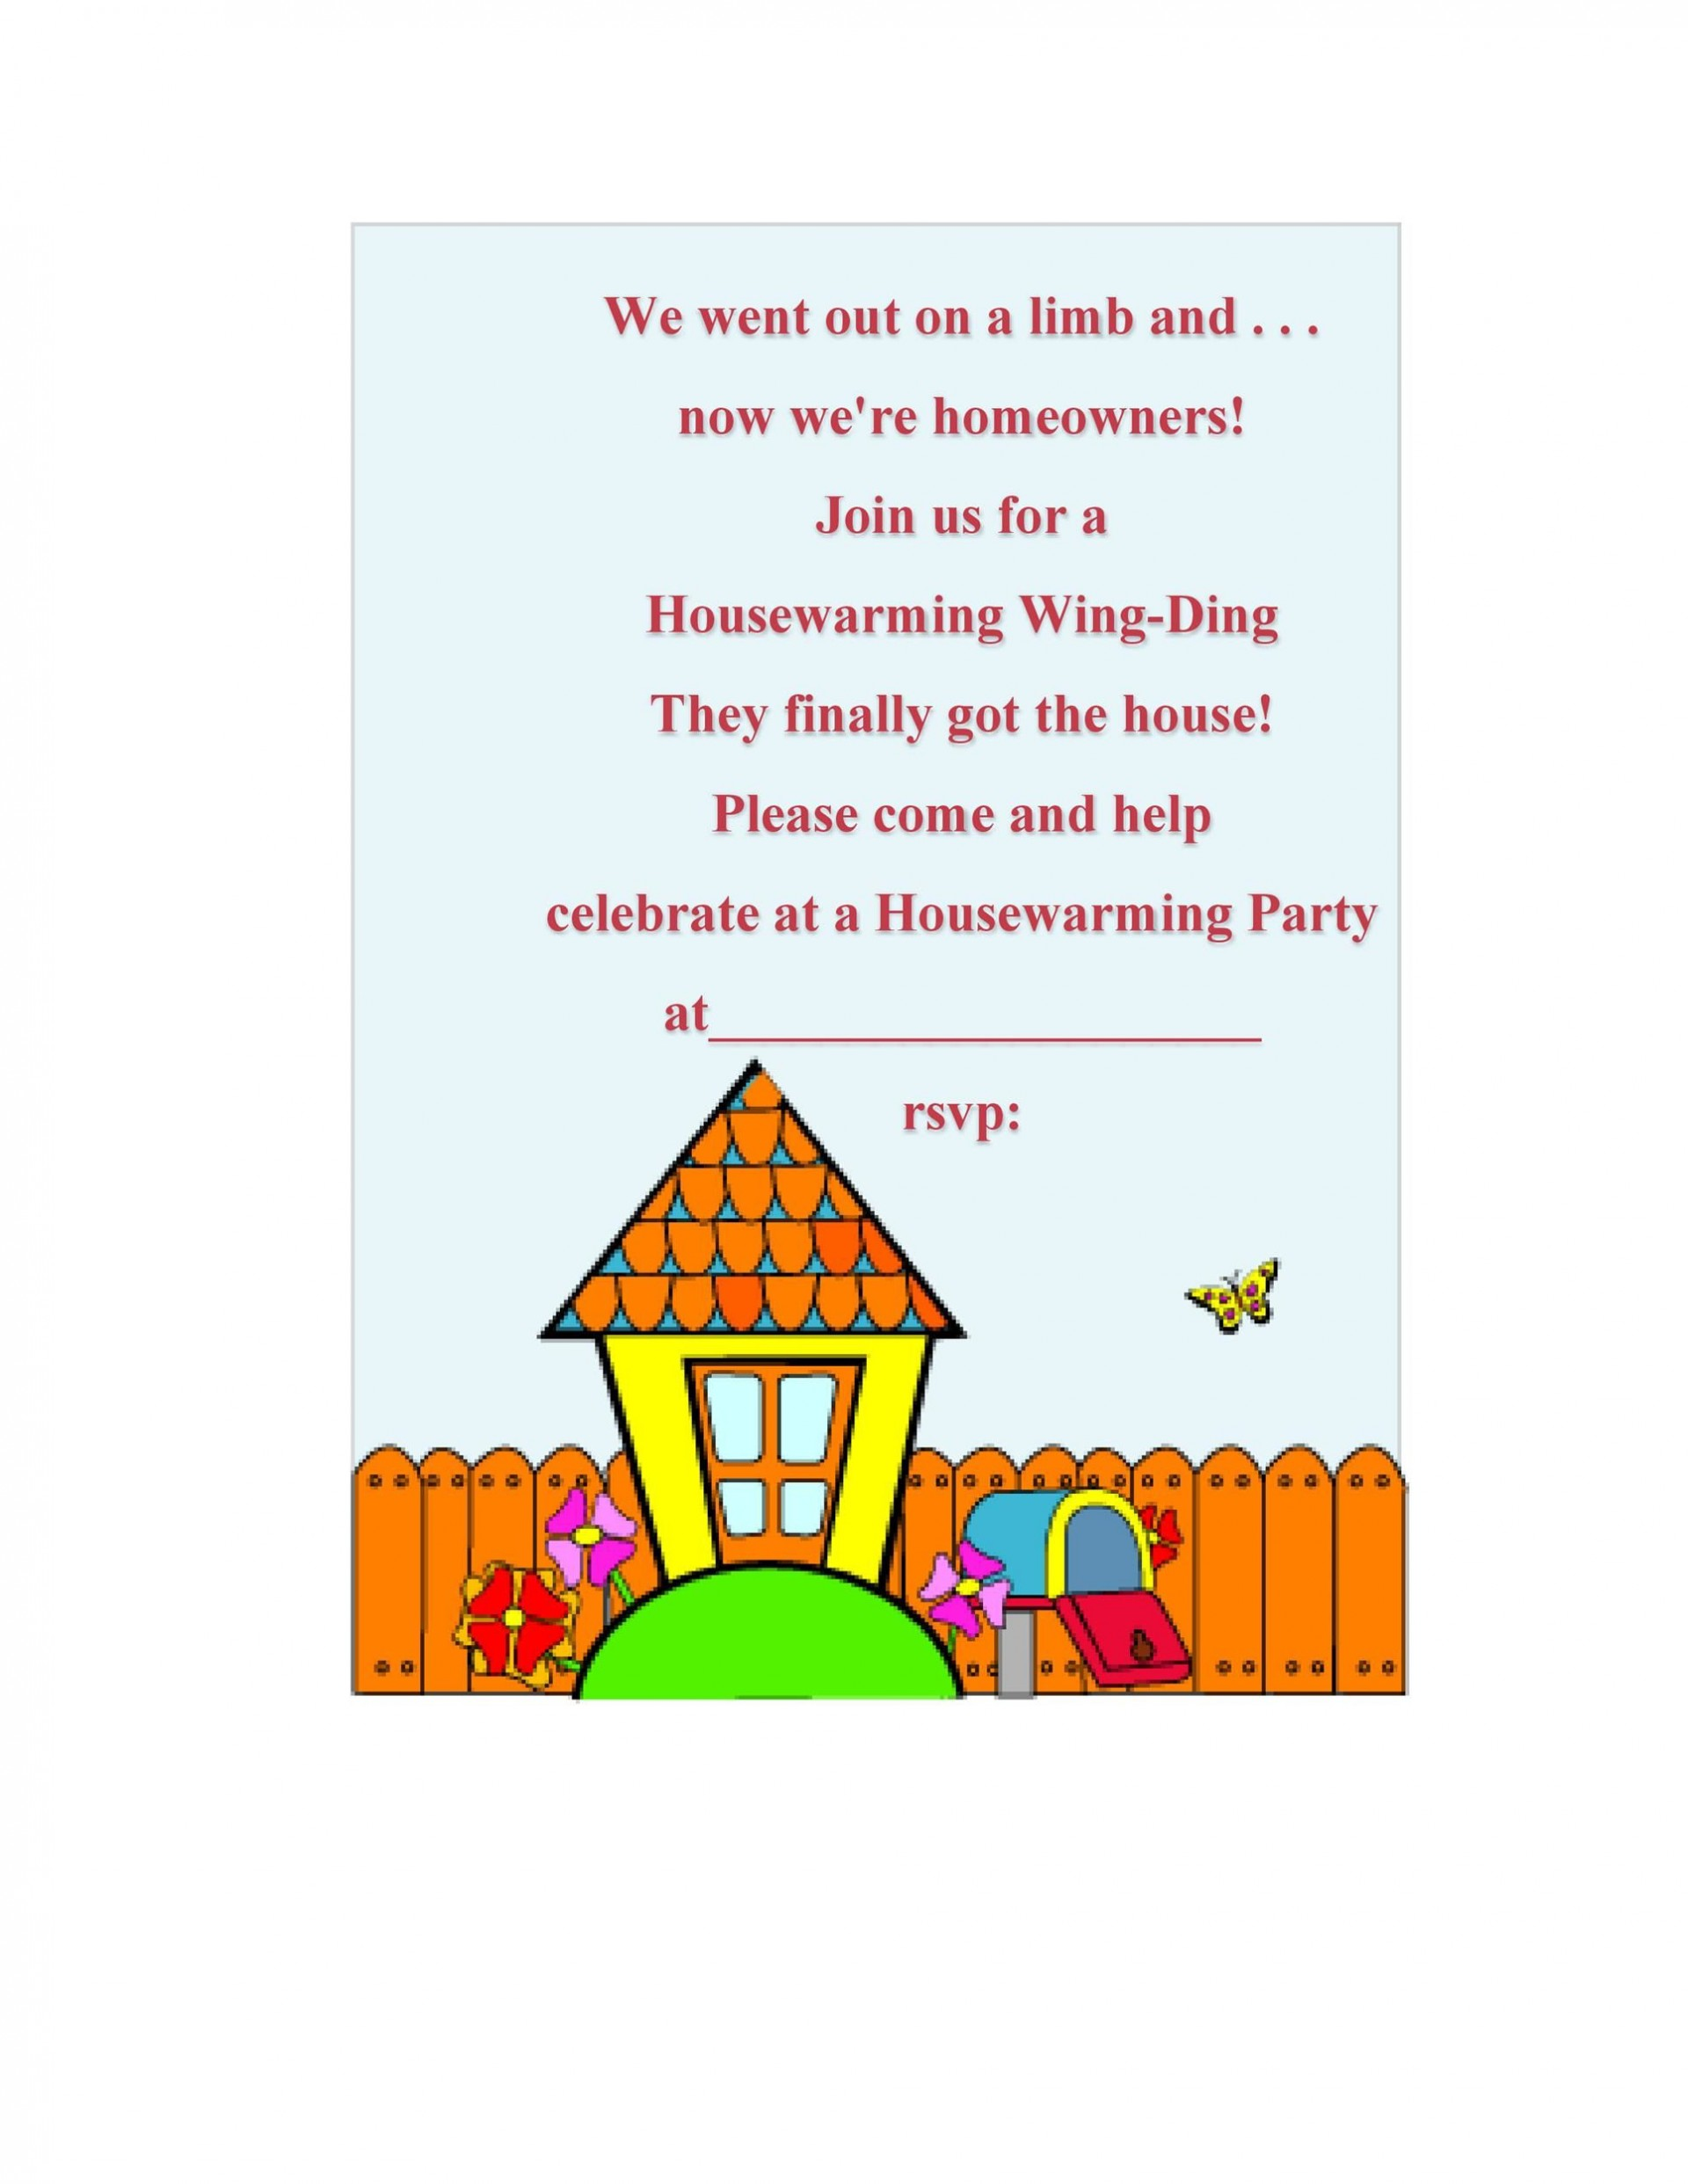 005 Striking Housewarming Party Invite Template Inspiration  Templates Invitation Maker Editable1920